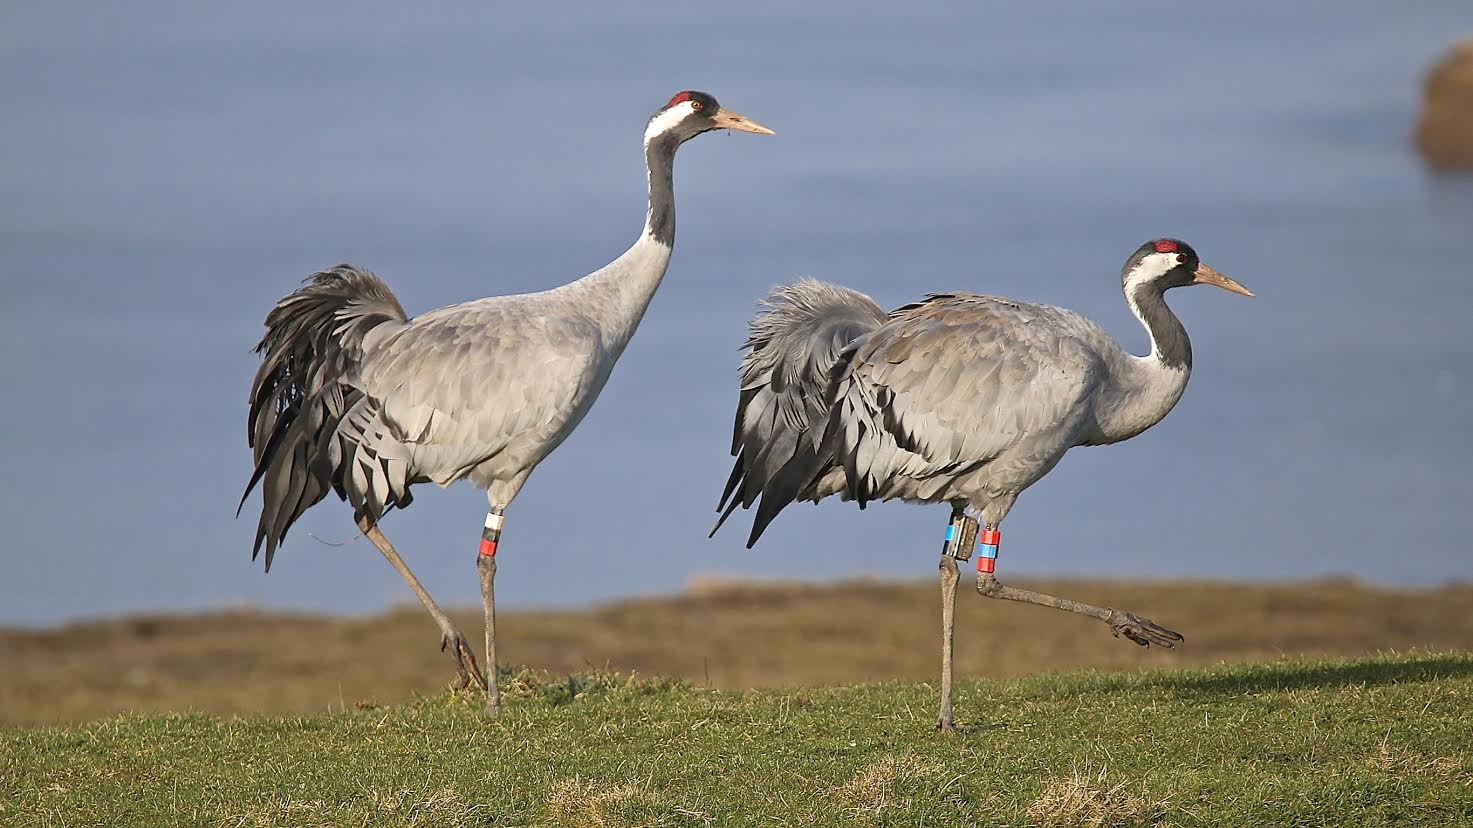 Cranes Ruby and Bart at Slimbridge. Picture © Roy Shilham / WWT